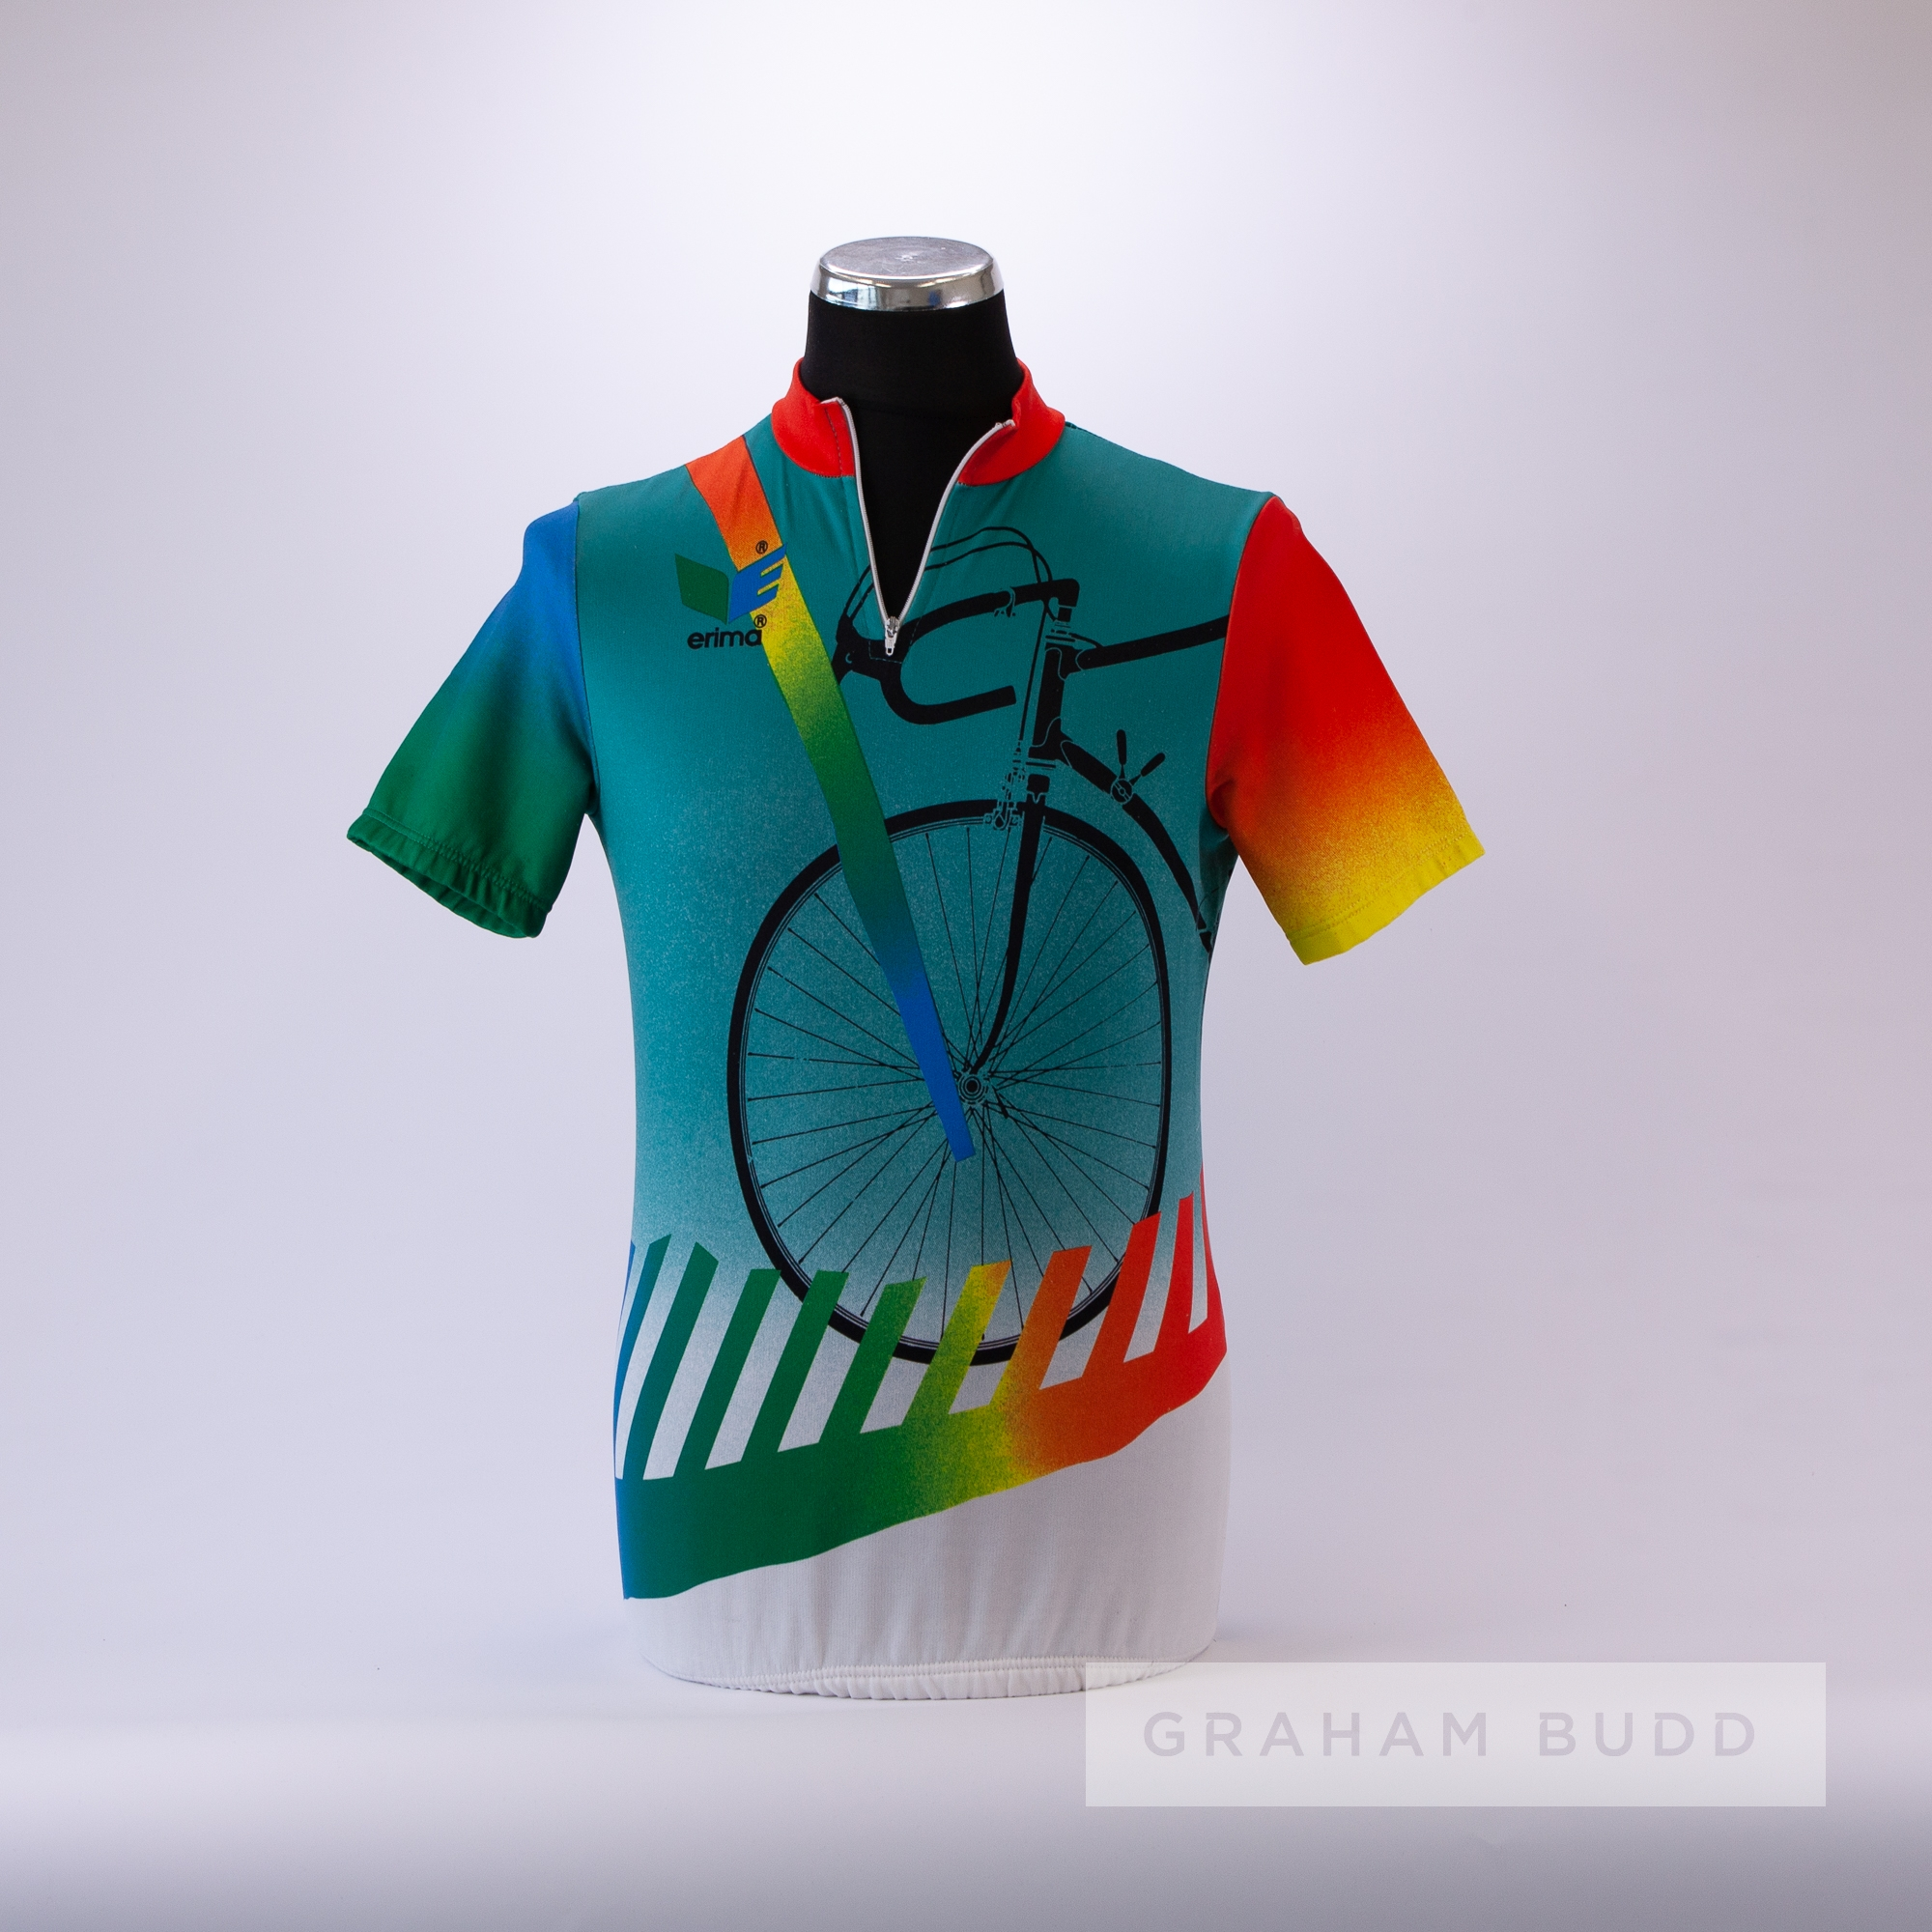 1985 turquoise, orange, blue and green Erima Art Cycling team race jersey, scarce, polyester - Image 3 of 4